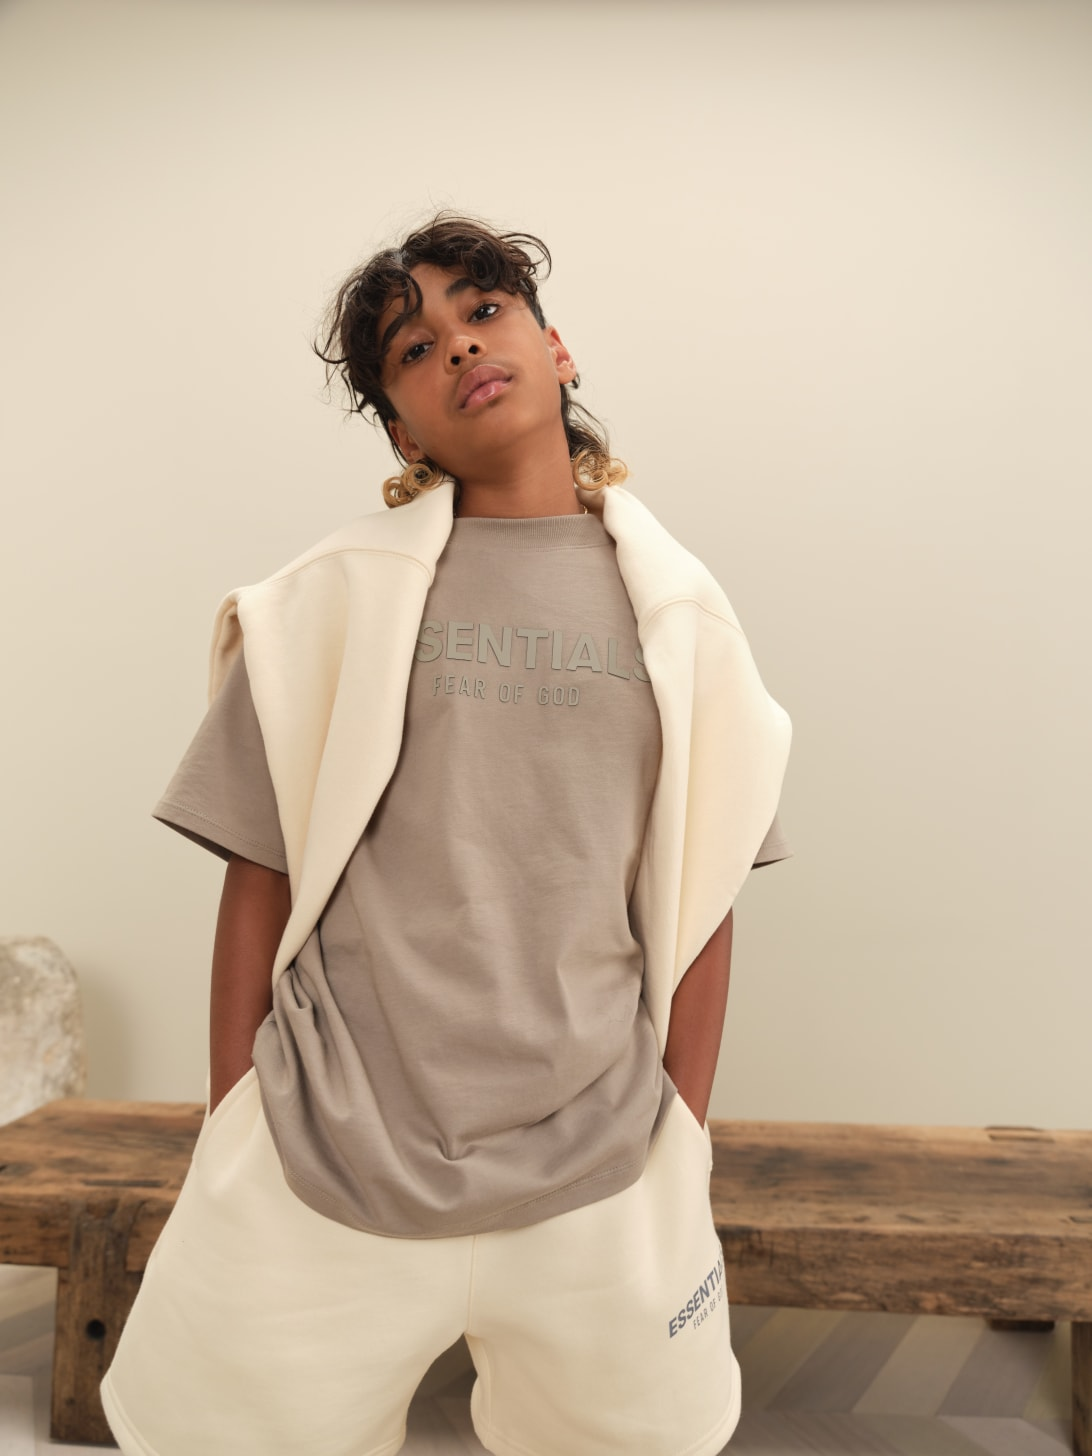 fear of god essentials spring delivery 21 lookbook 1 10 Fear of God ESSENTIALS 2021 tavasz